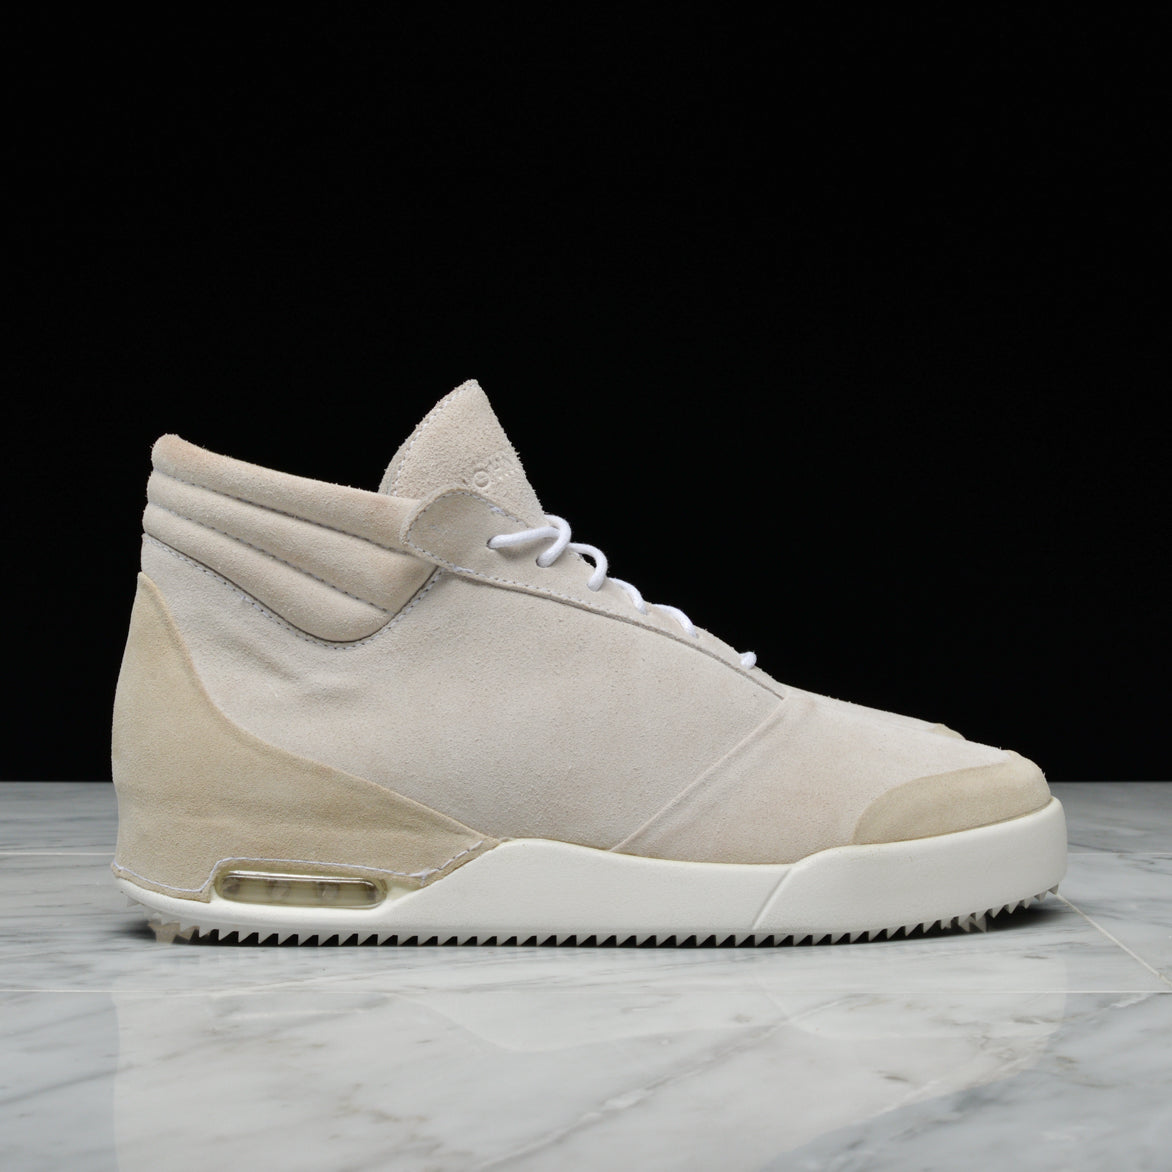 001 BY JOHN GEIGER - FROST / WHITE